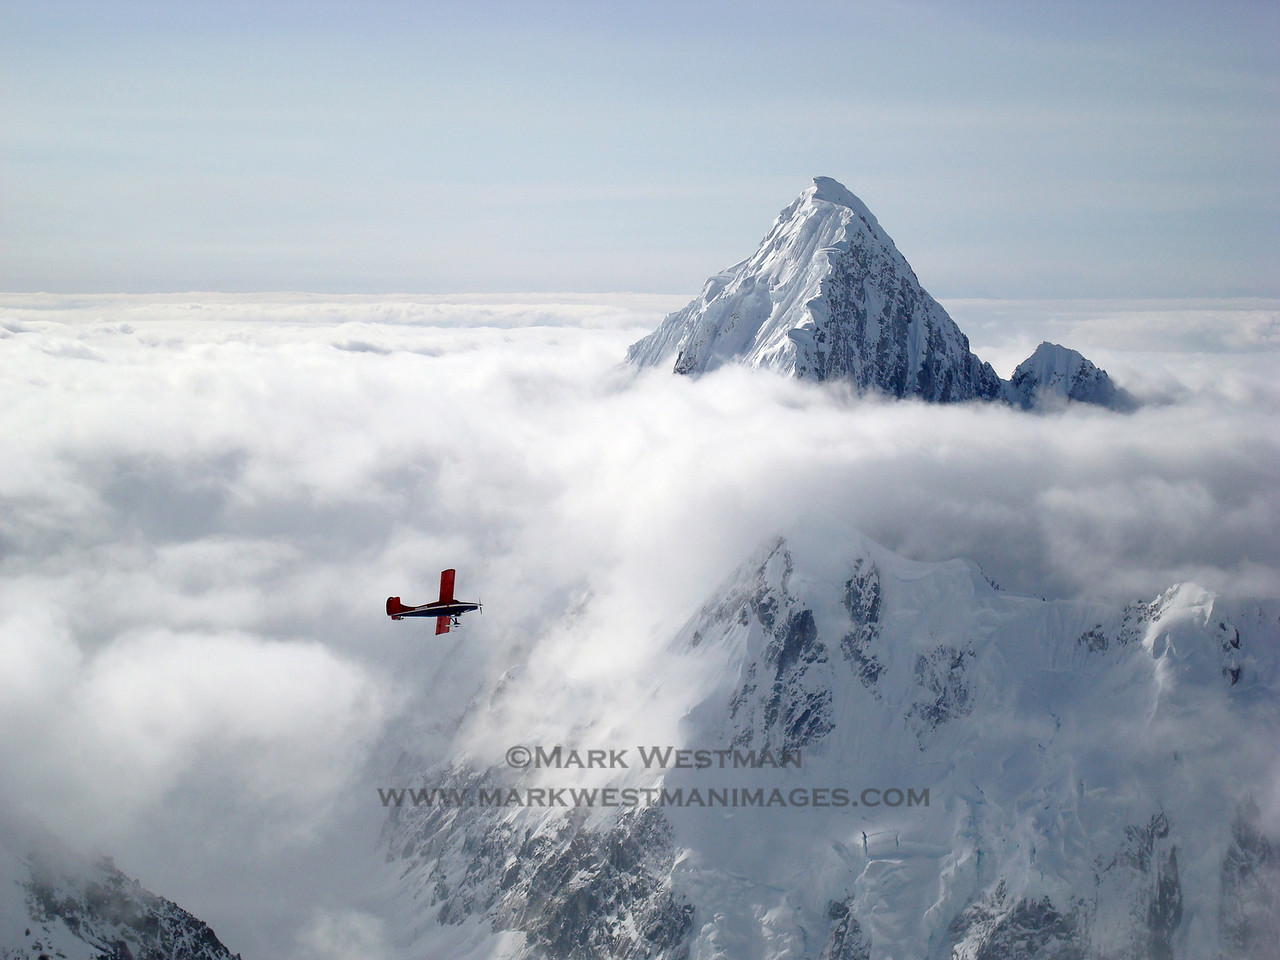 Paul Roderick flying his DeHavilland Otter in front of Mount Huntington. I took this photograph from 11,200 feet during an ascent of Denali's Isis Face. Paul is my brother in law and the owner of Talkeetna Air Taxi,  and was flying by to see how we were doing.<br /> <br /> This photo was featured as a double page spread in the Table of Contents page in Alpinist Magazine, issue #29.